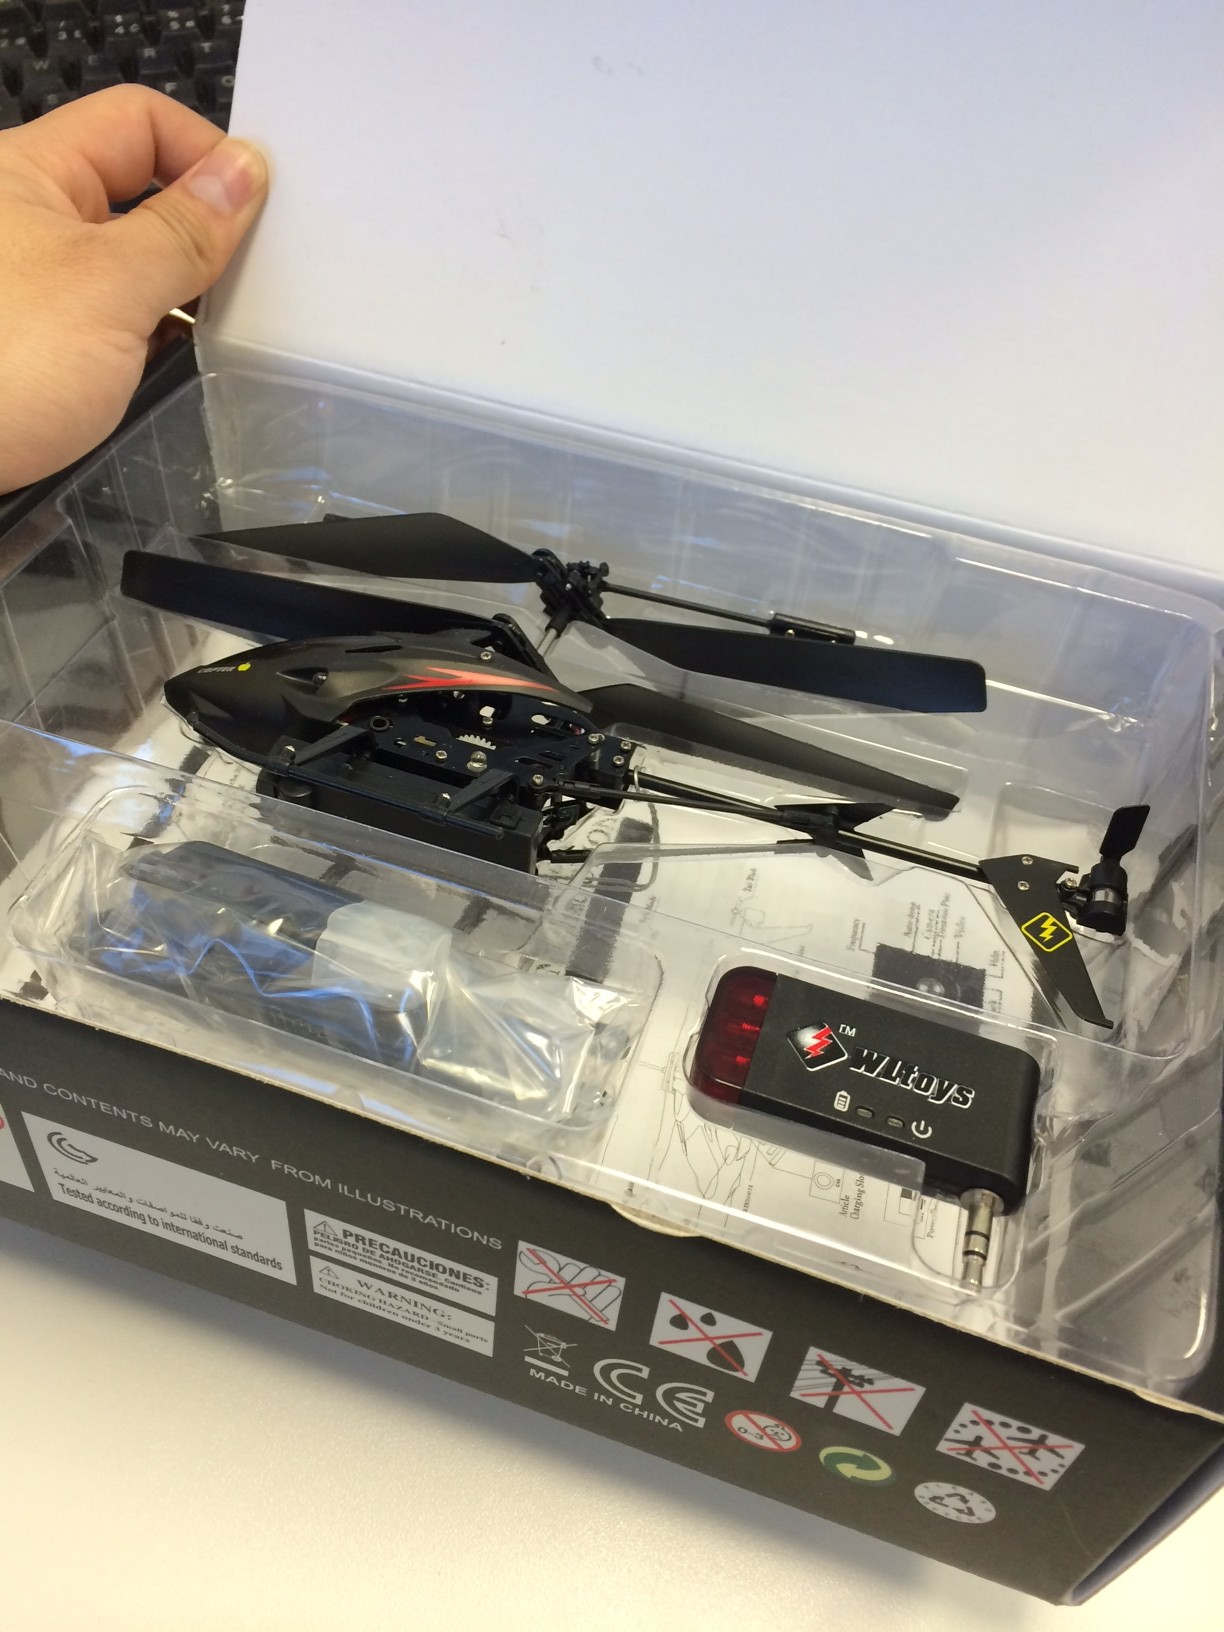 RC S215 Helicopter open box review